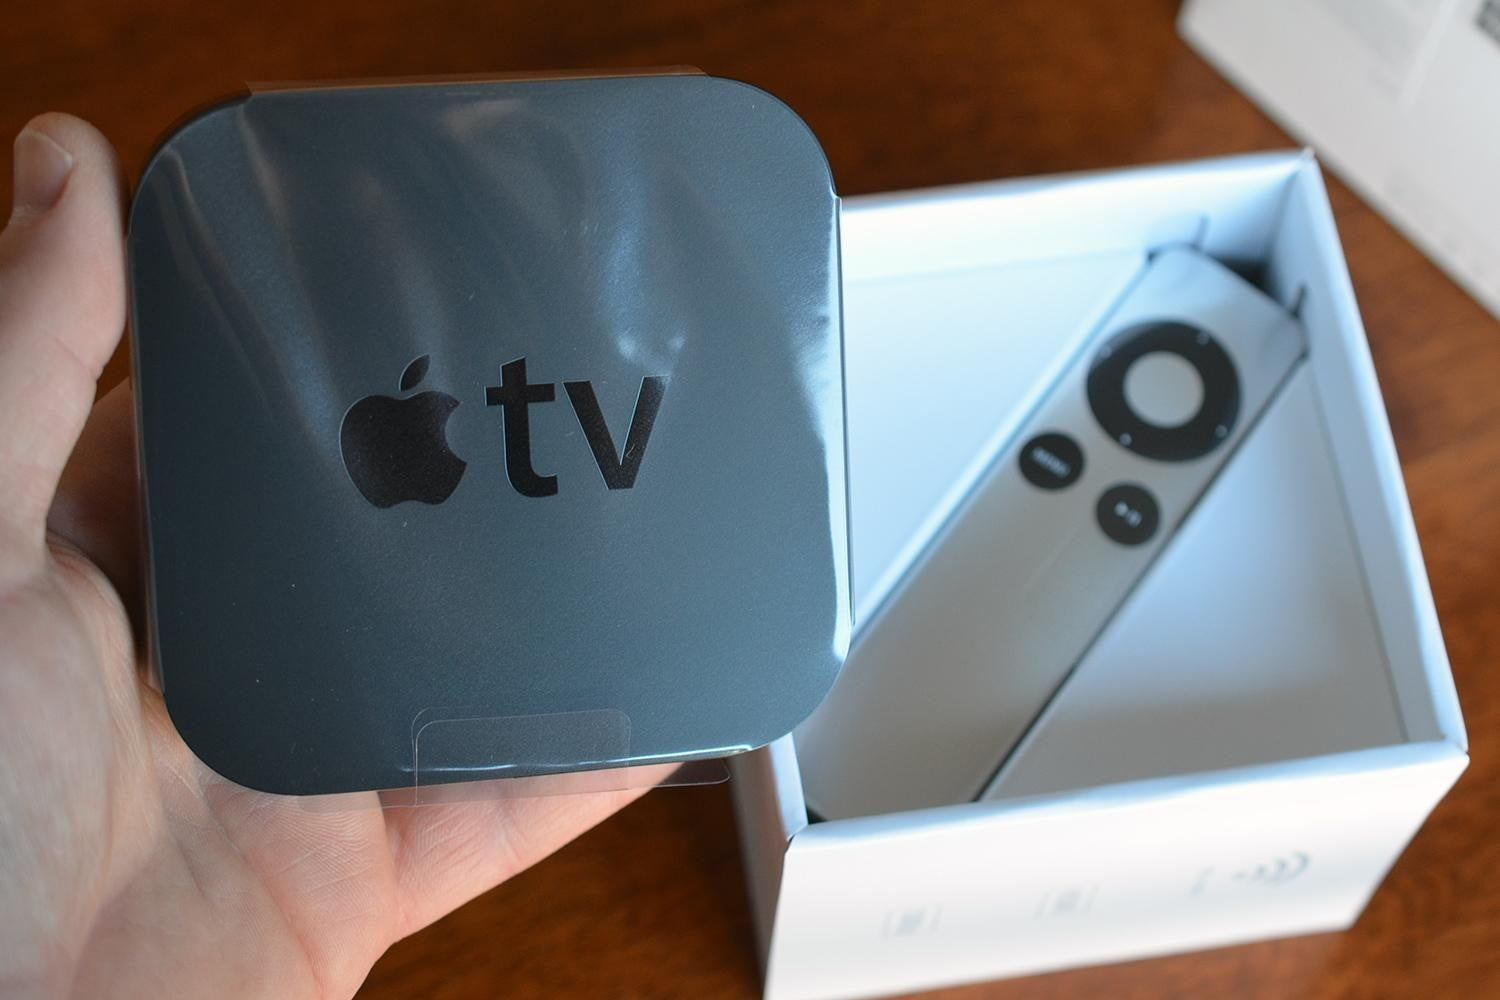 Tivos Roamio Dvrs Now Stream To Apple Tv Via Airplay Digital Trends Power Diagram Besides Cable Box Connections On Cord